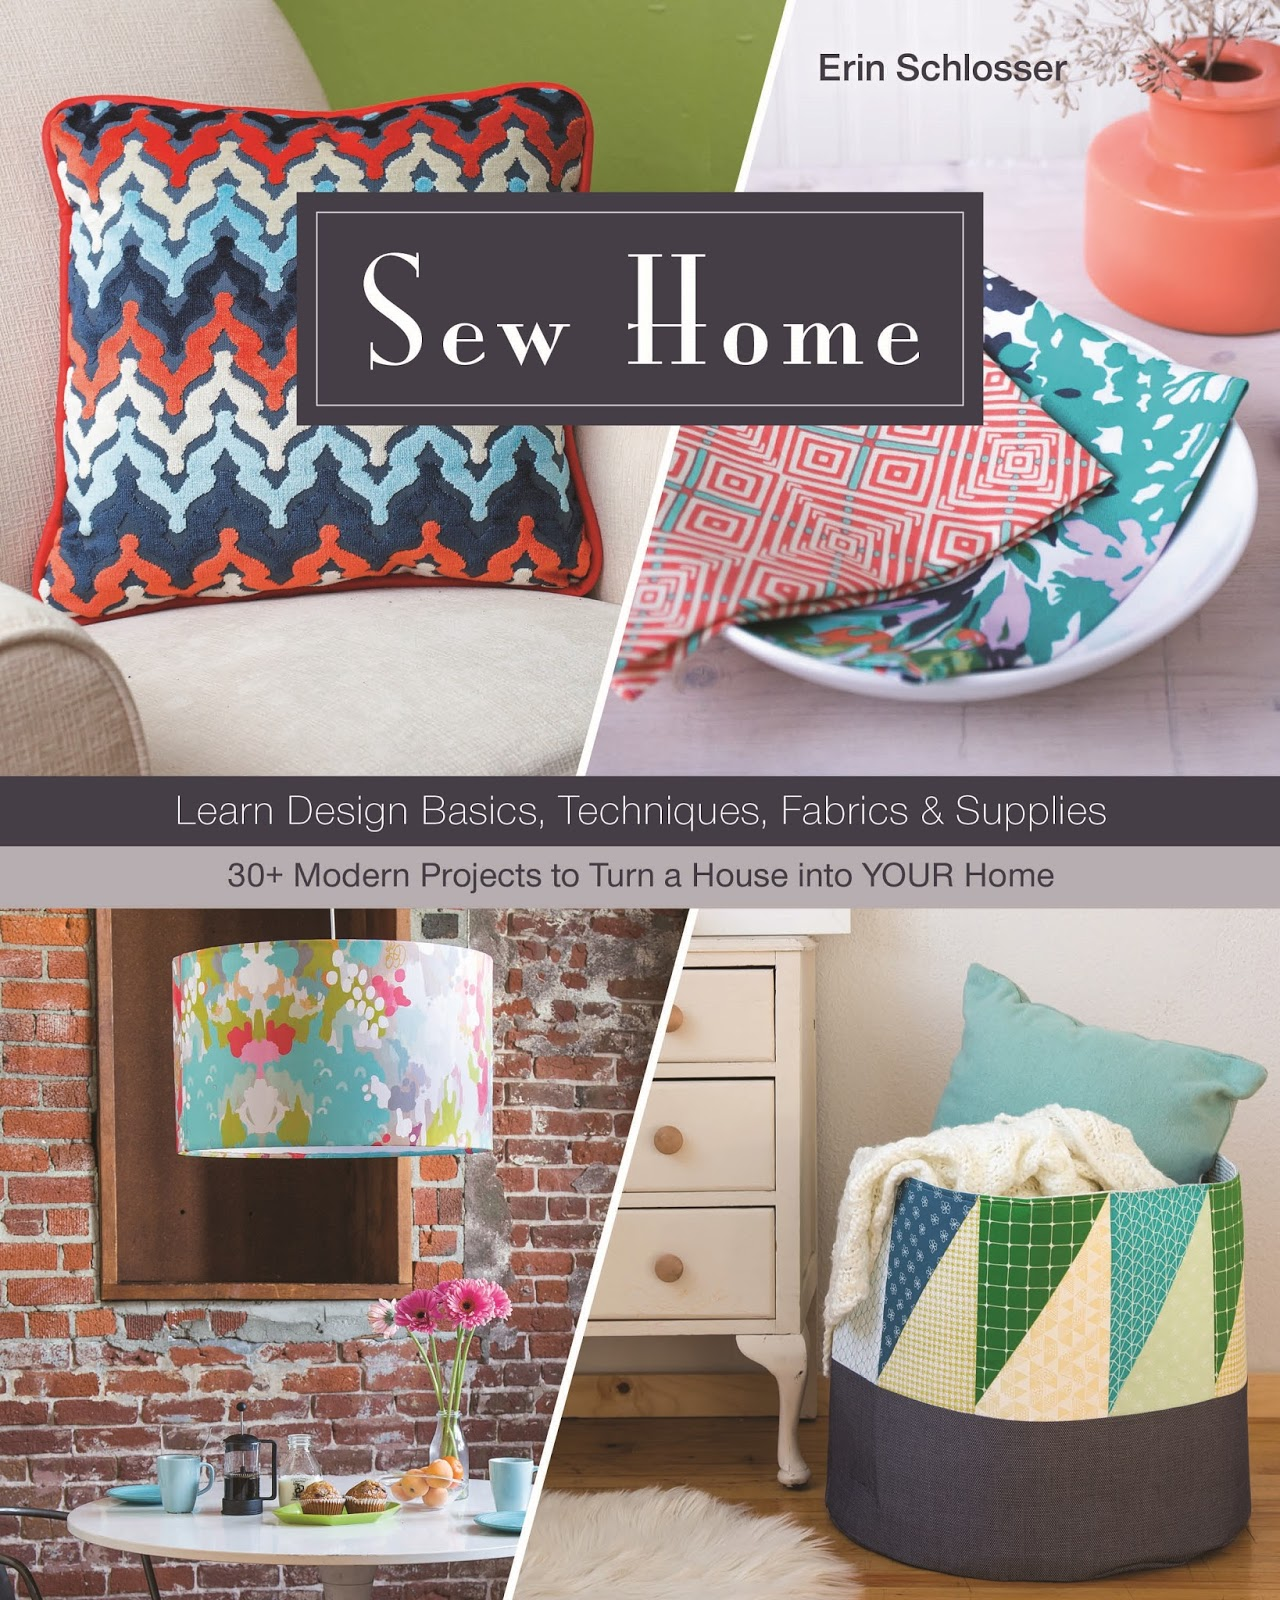 SewHome By Erin Schlosser (photo By Cu0026T Publishing)